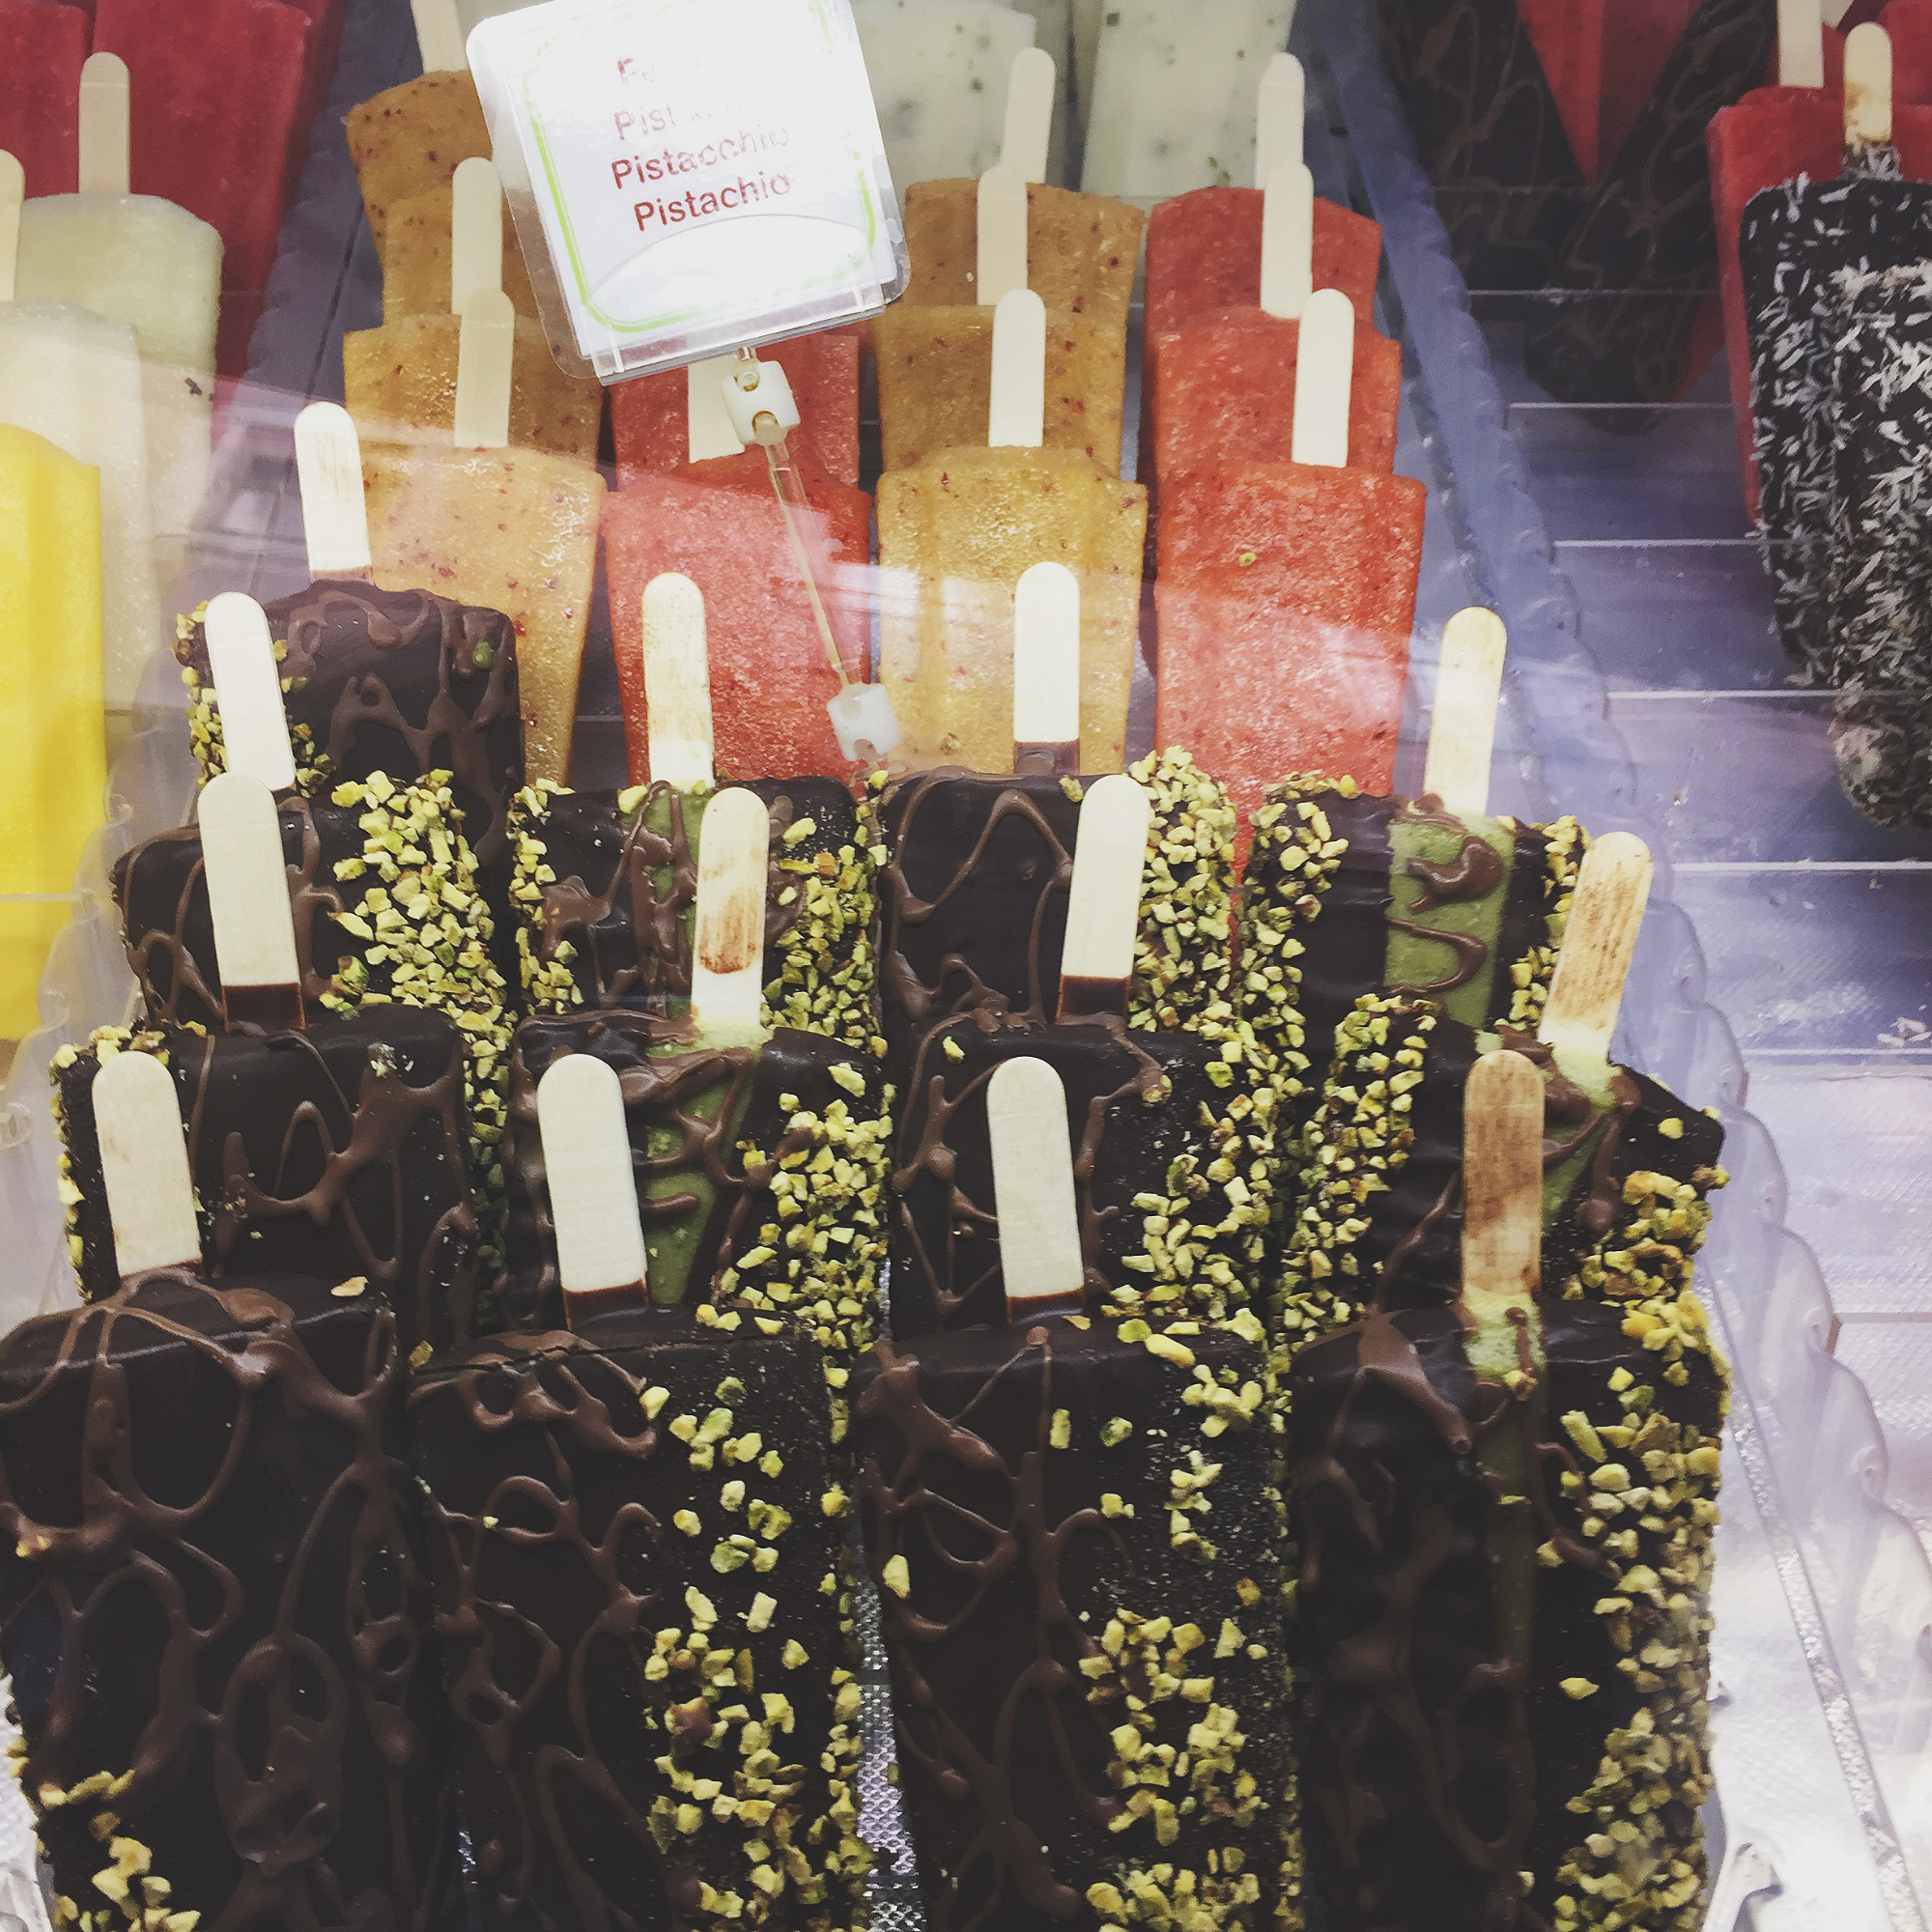 A mixture of gourmet and fruit ice lollies from  Bianco Latte